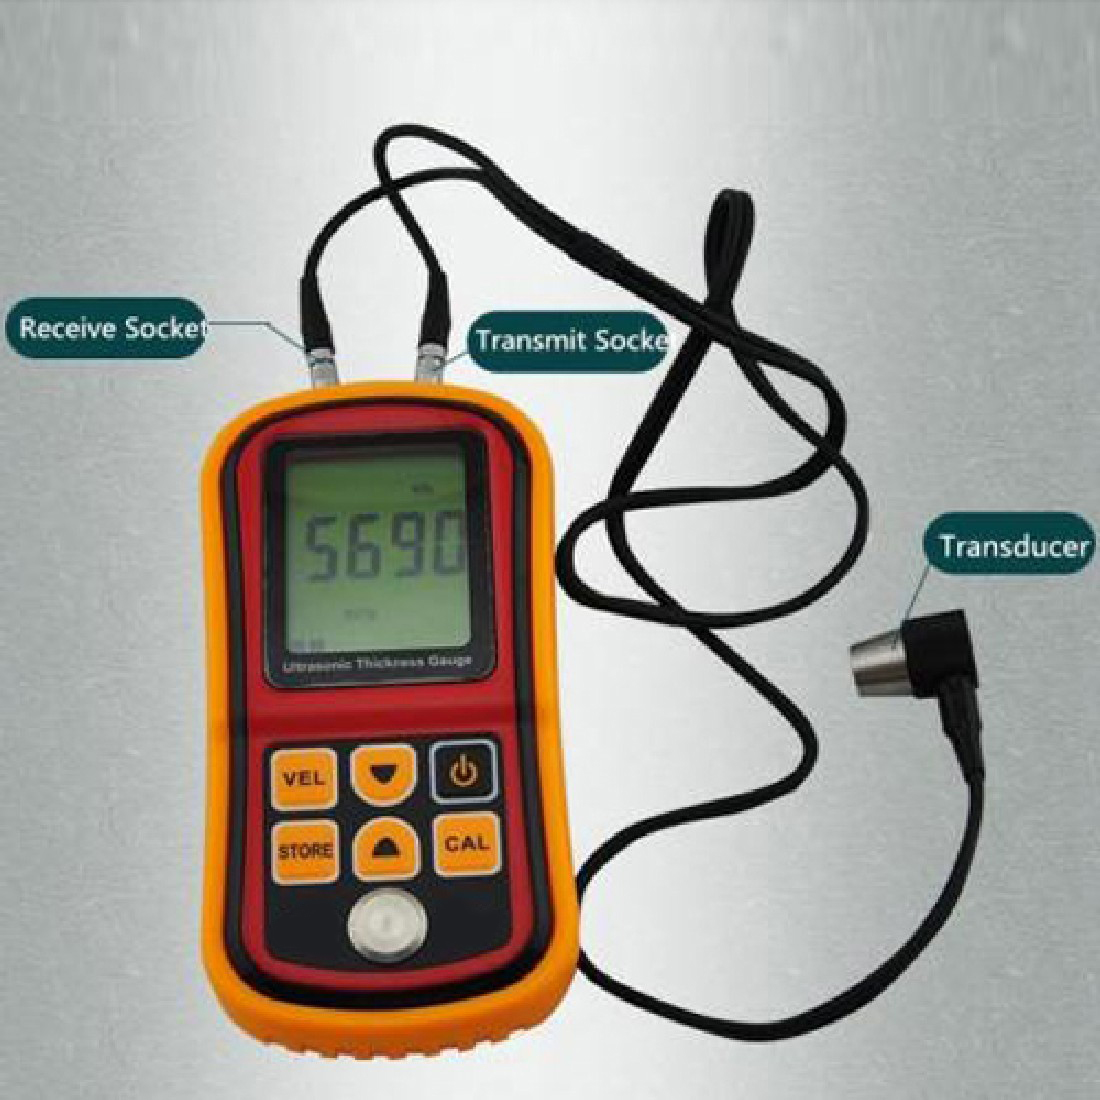 Gm100 Limited Coating Thickness Gauge Ultrasonic Wall Thickness Gauge Meter Tester Steel Pvc Digital Testing кардиган voi jeans